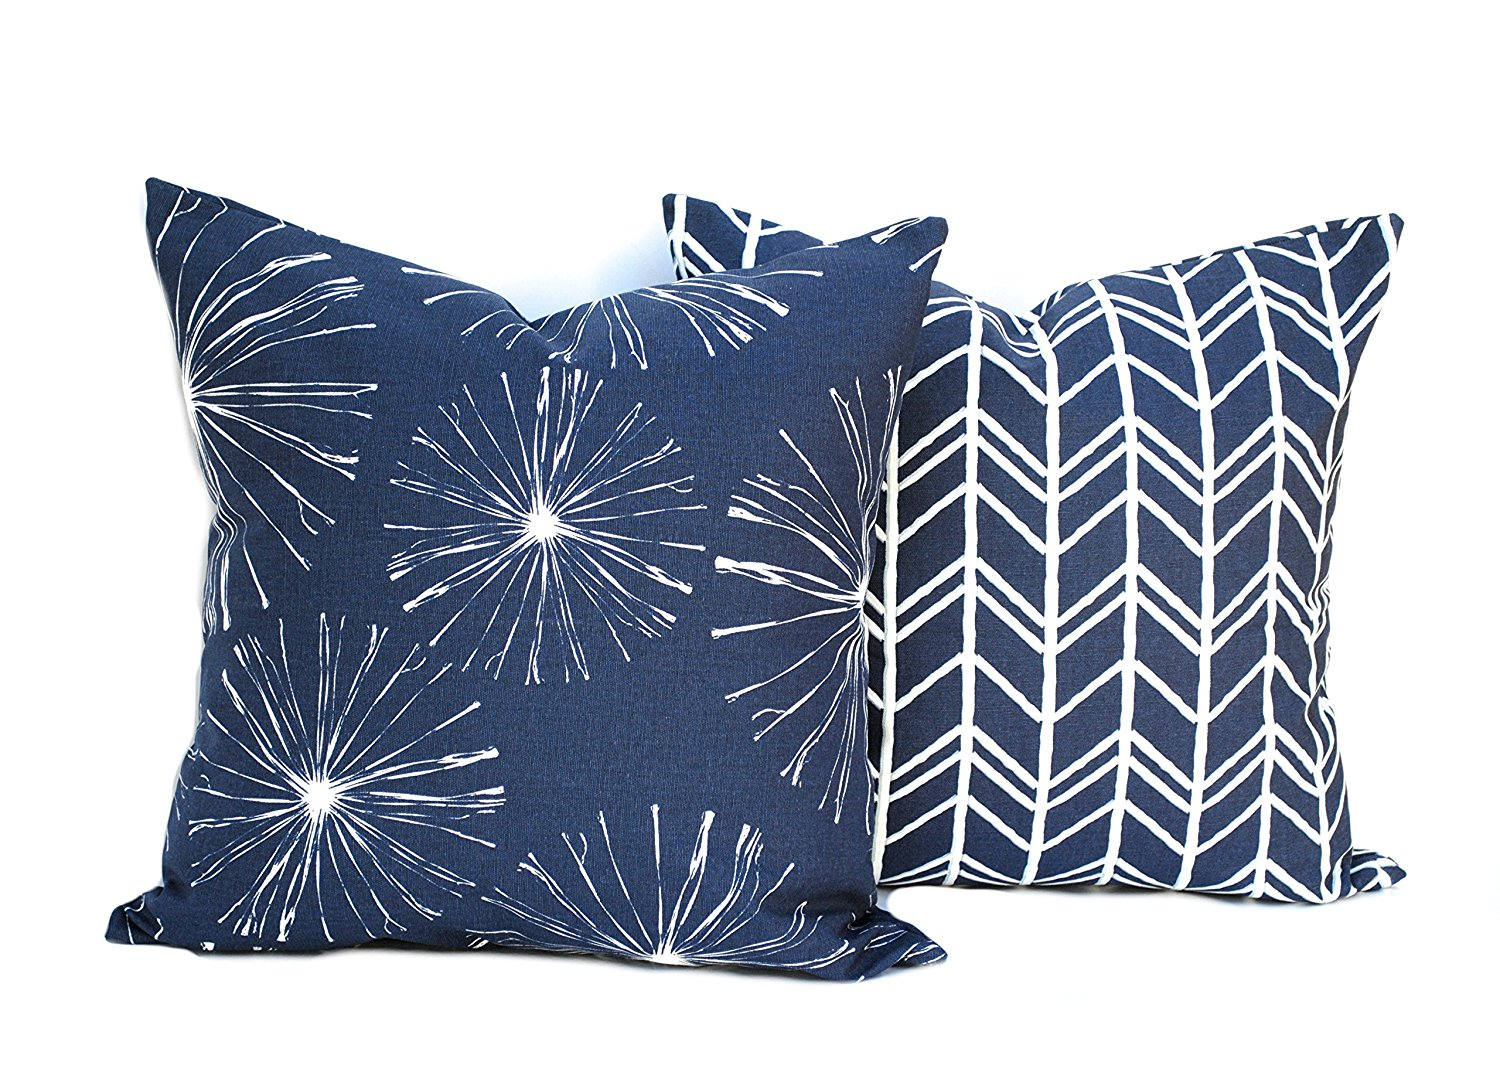 Two navy pillow covers, One Floral Pillow and One Geometric Pillow, 16x16 inch, Home decor, decorative pillow, throw pillow, Navy pillow, Blue Pillow, Striped Throw Pillow